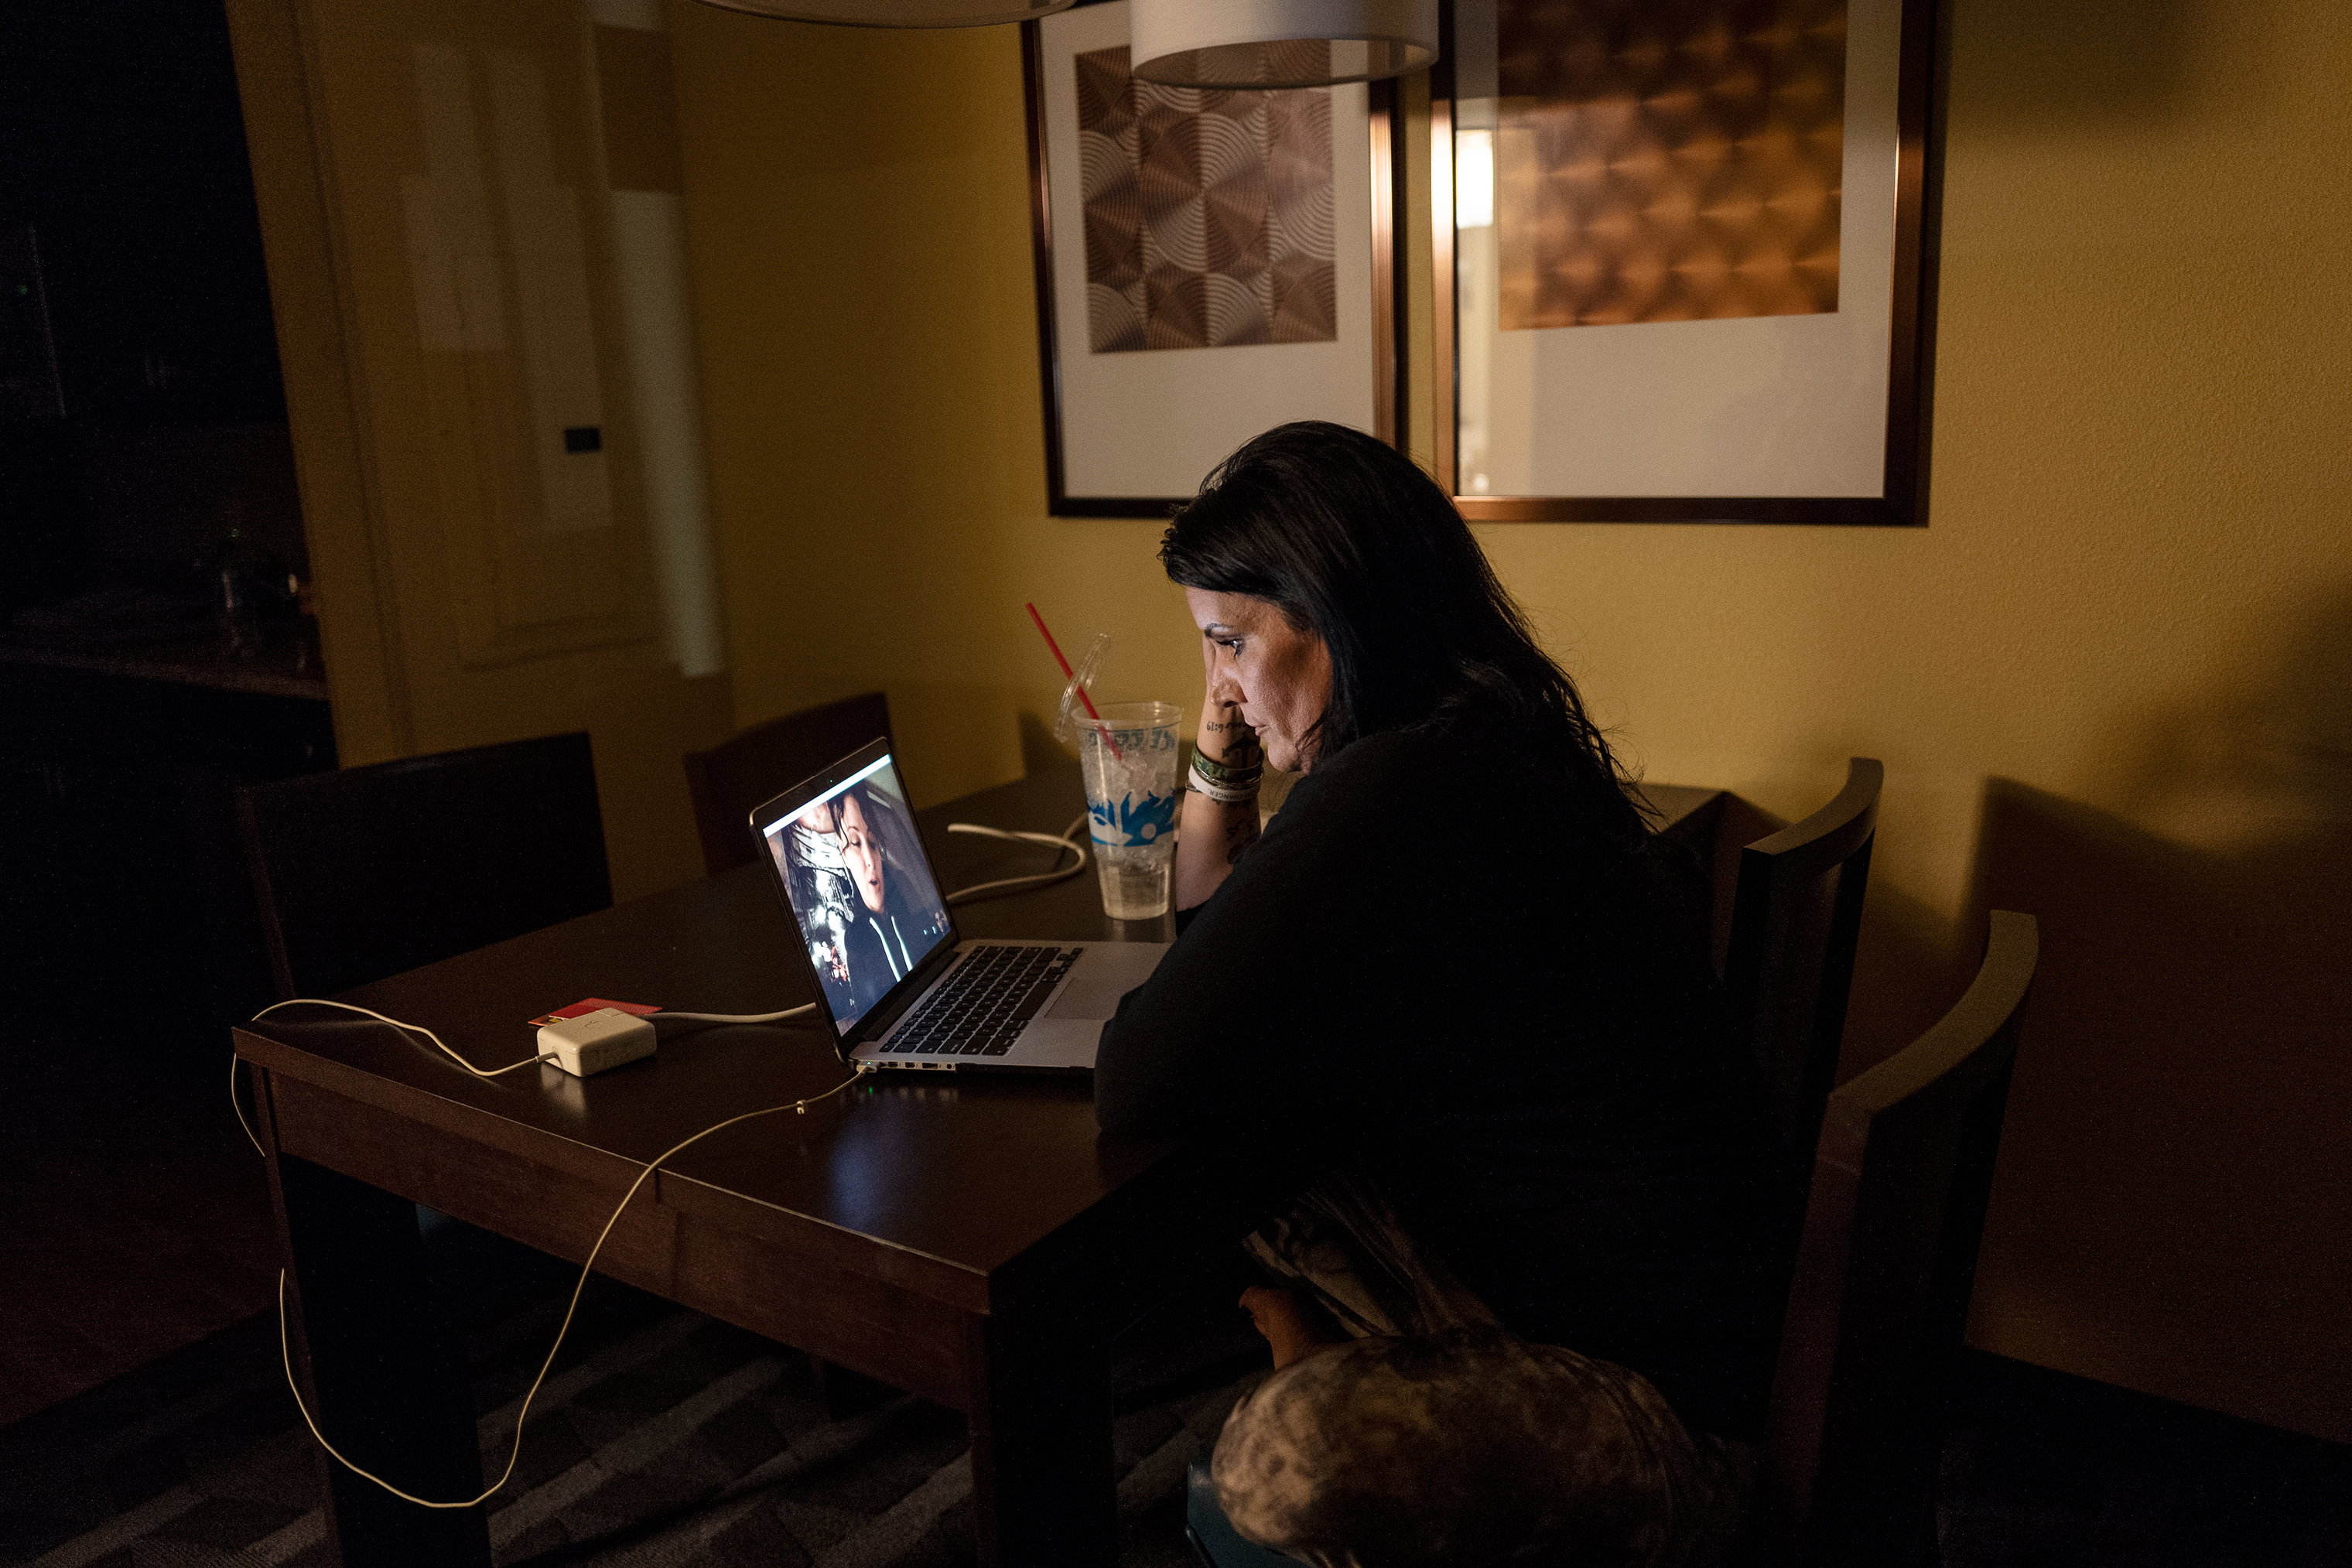 From her hotel room in North Dakota, Lazenko speaks with Adale, a human trafficking survivor in Utah, over Skype. Lazenko spends hours every day remotely helping women all over the US.